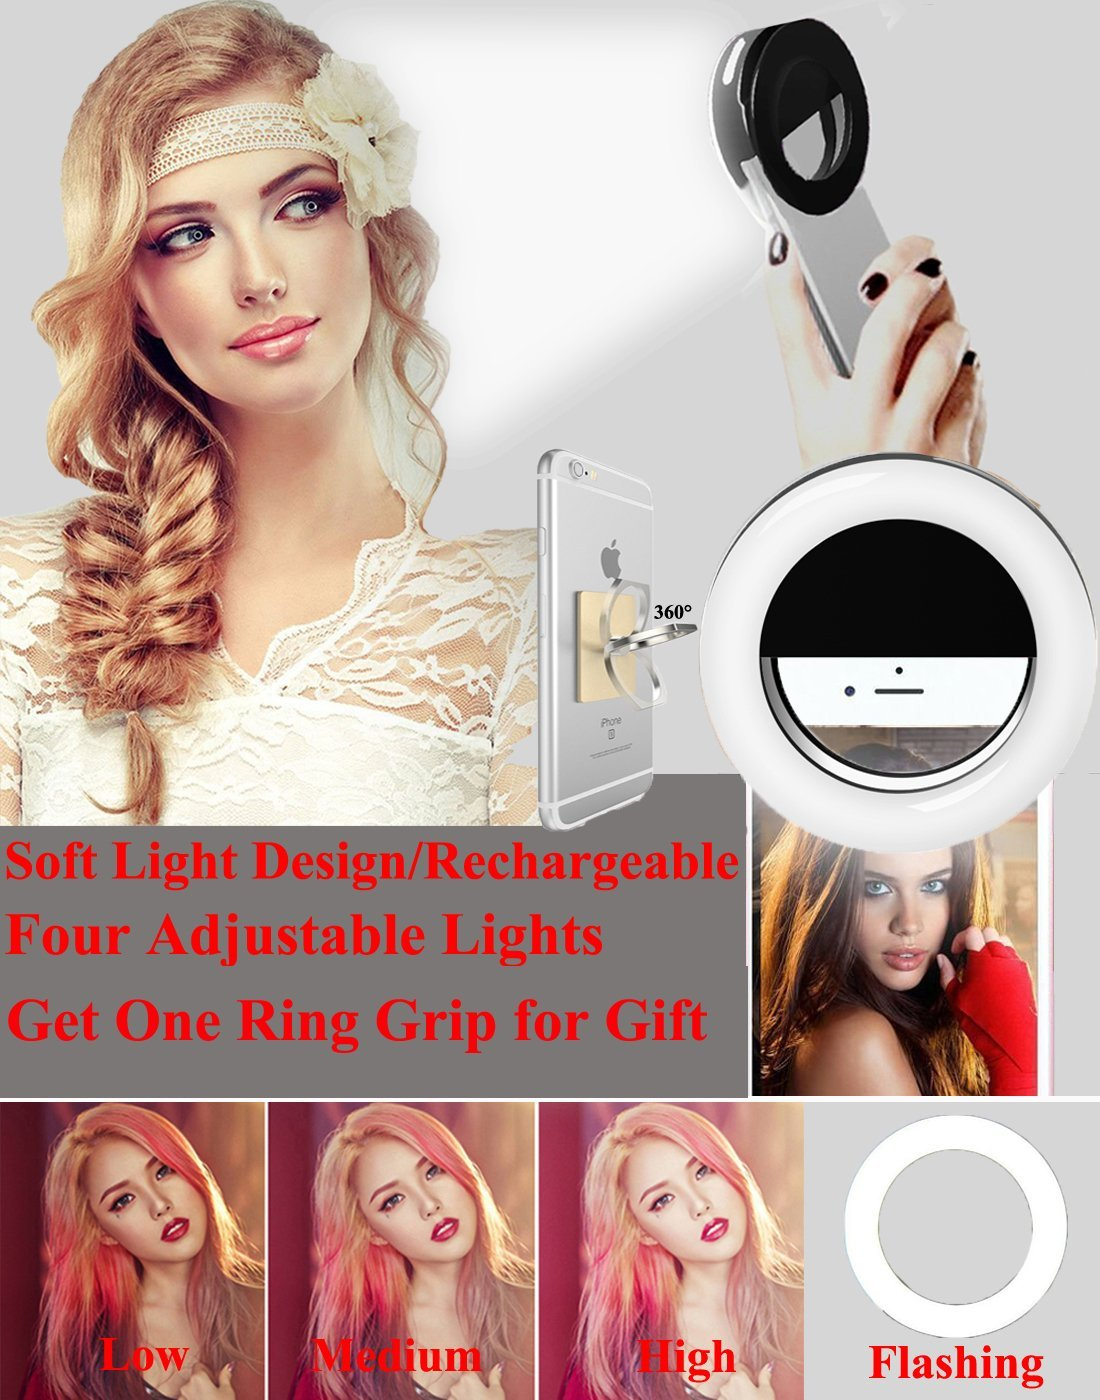 Makeup Ring Light,Werleo Rechargable Camera Flash Fill Light Dimmable Selfie Ring Lighting Clip on Photography Light [36 LED]&Cell Phone Ring Grip Holder for iPhone Macbook iPad Sumsung Galaxy Tablet